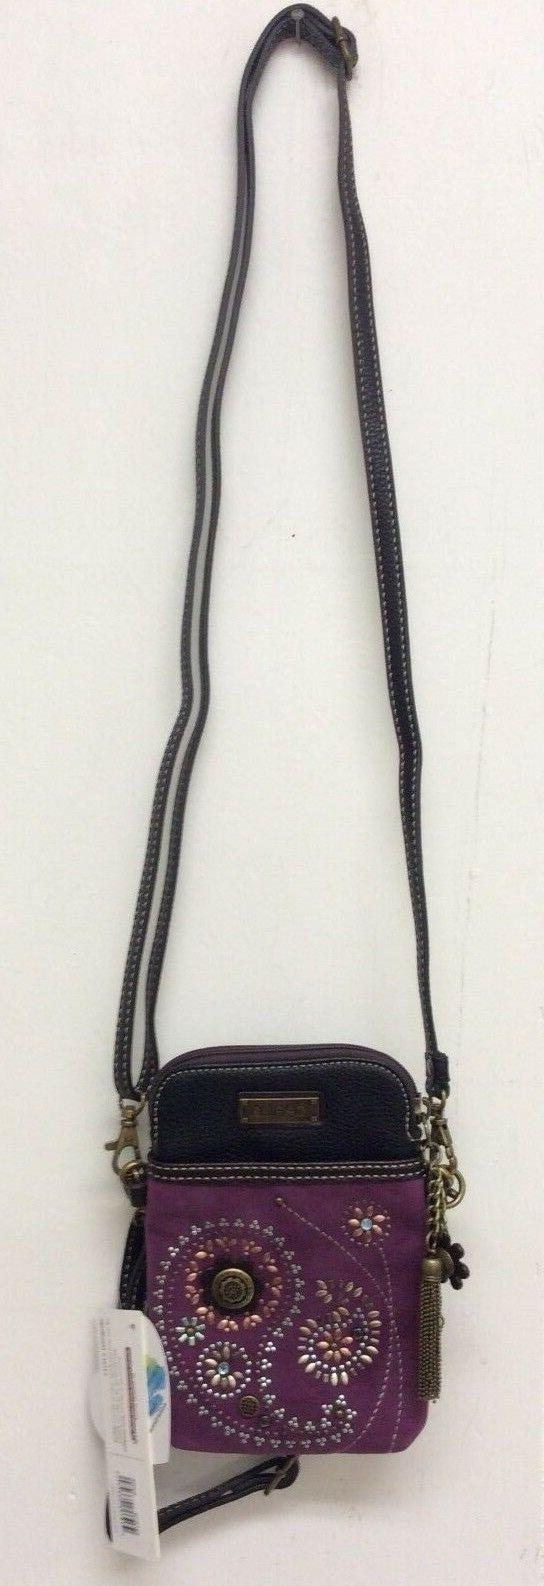 Chala Dazzled Paisley Cell Phone Convertible Purple New